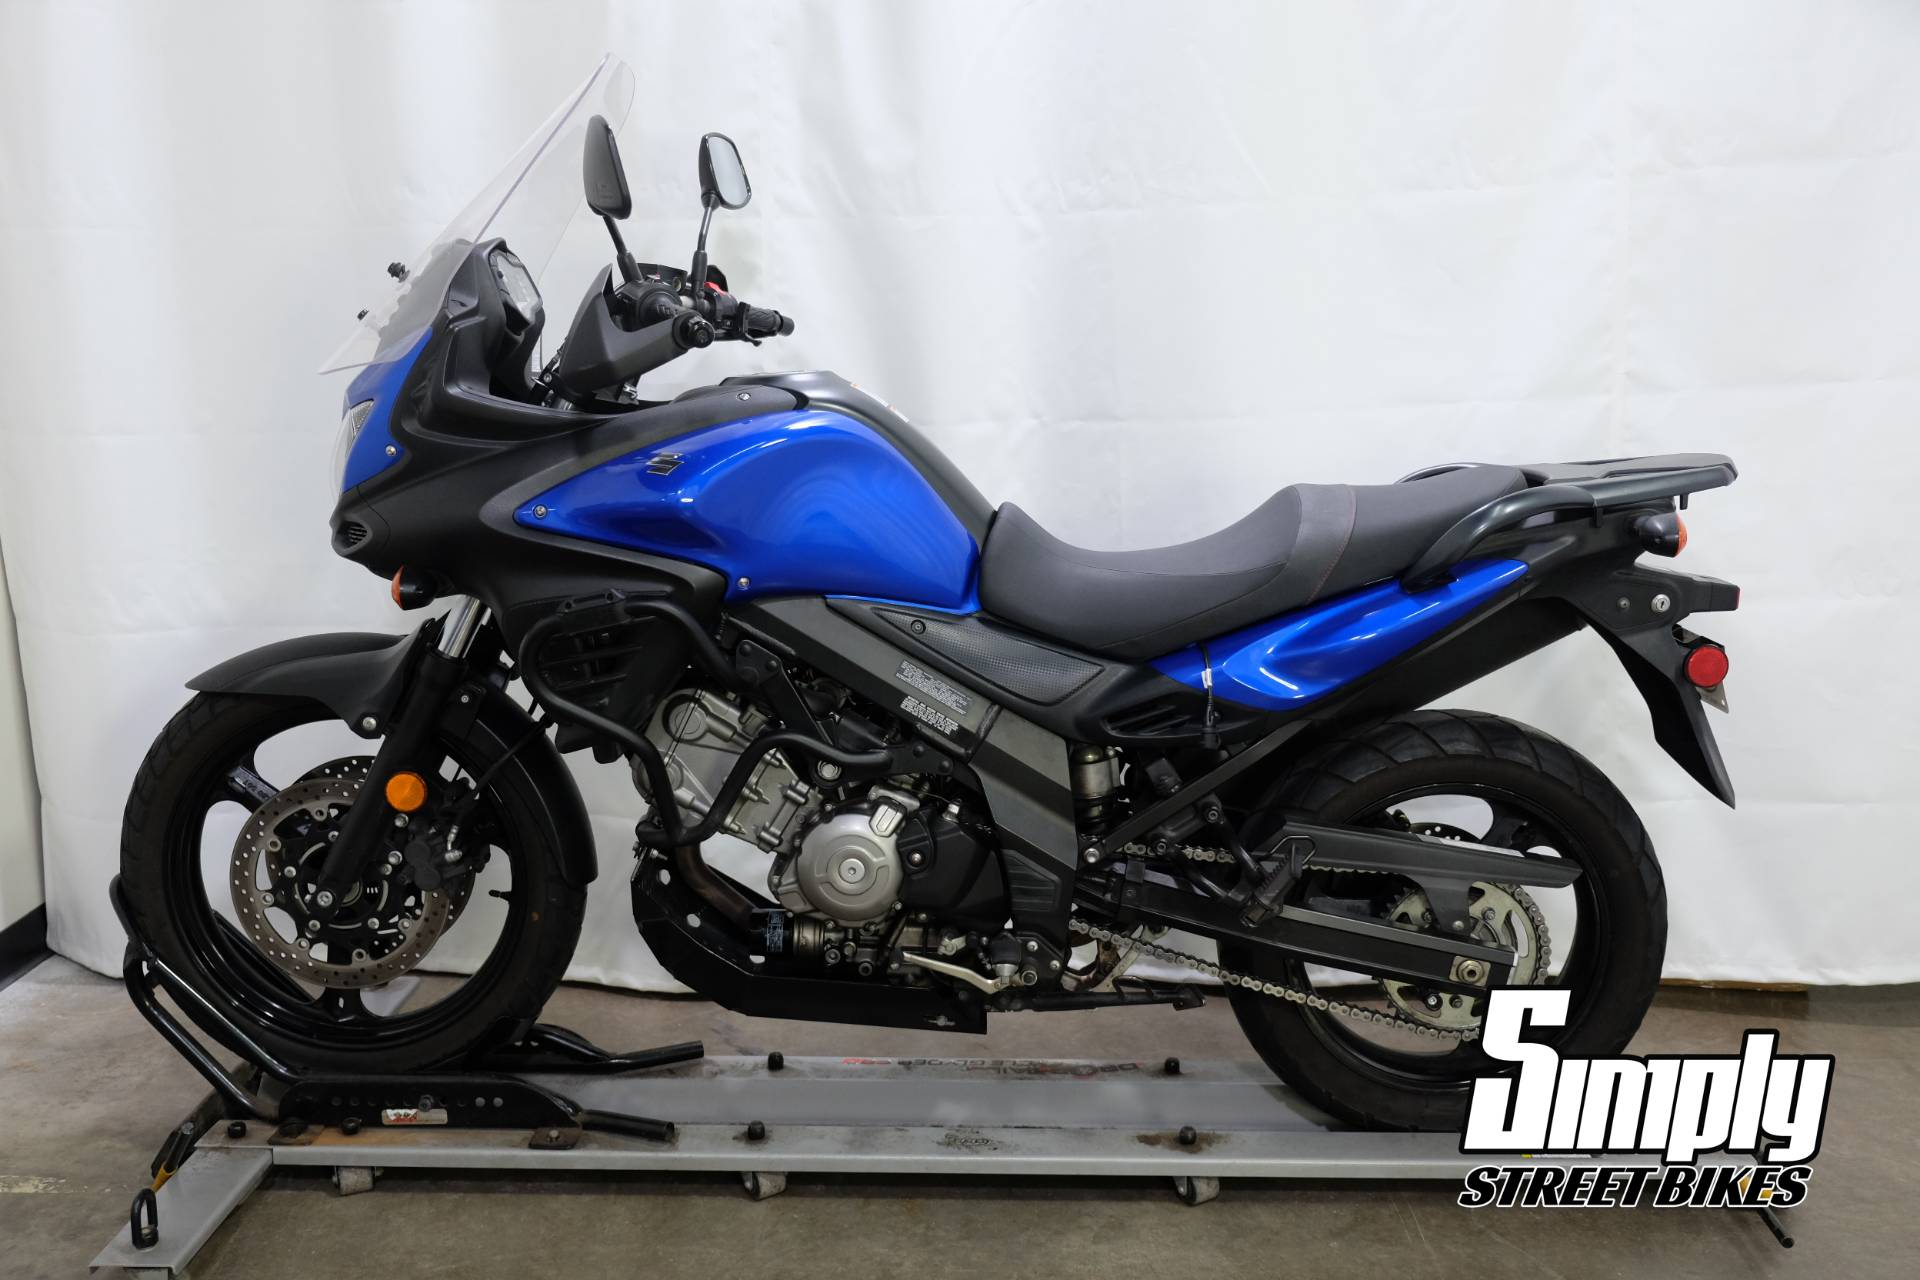 2013 Suzuki V-Strom 650 ABS in Eden Prairie, Minnesota - Photo 5